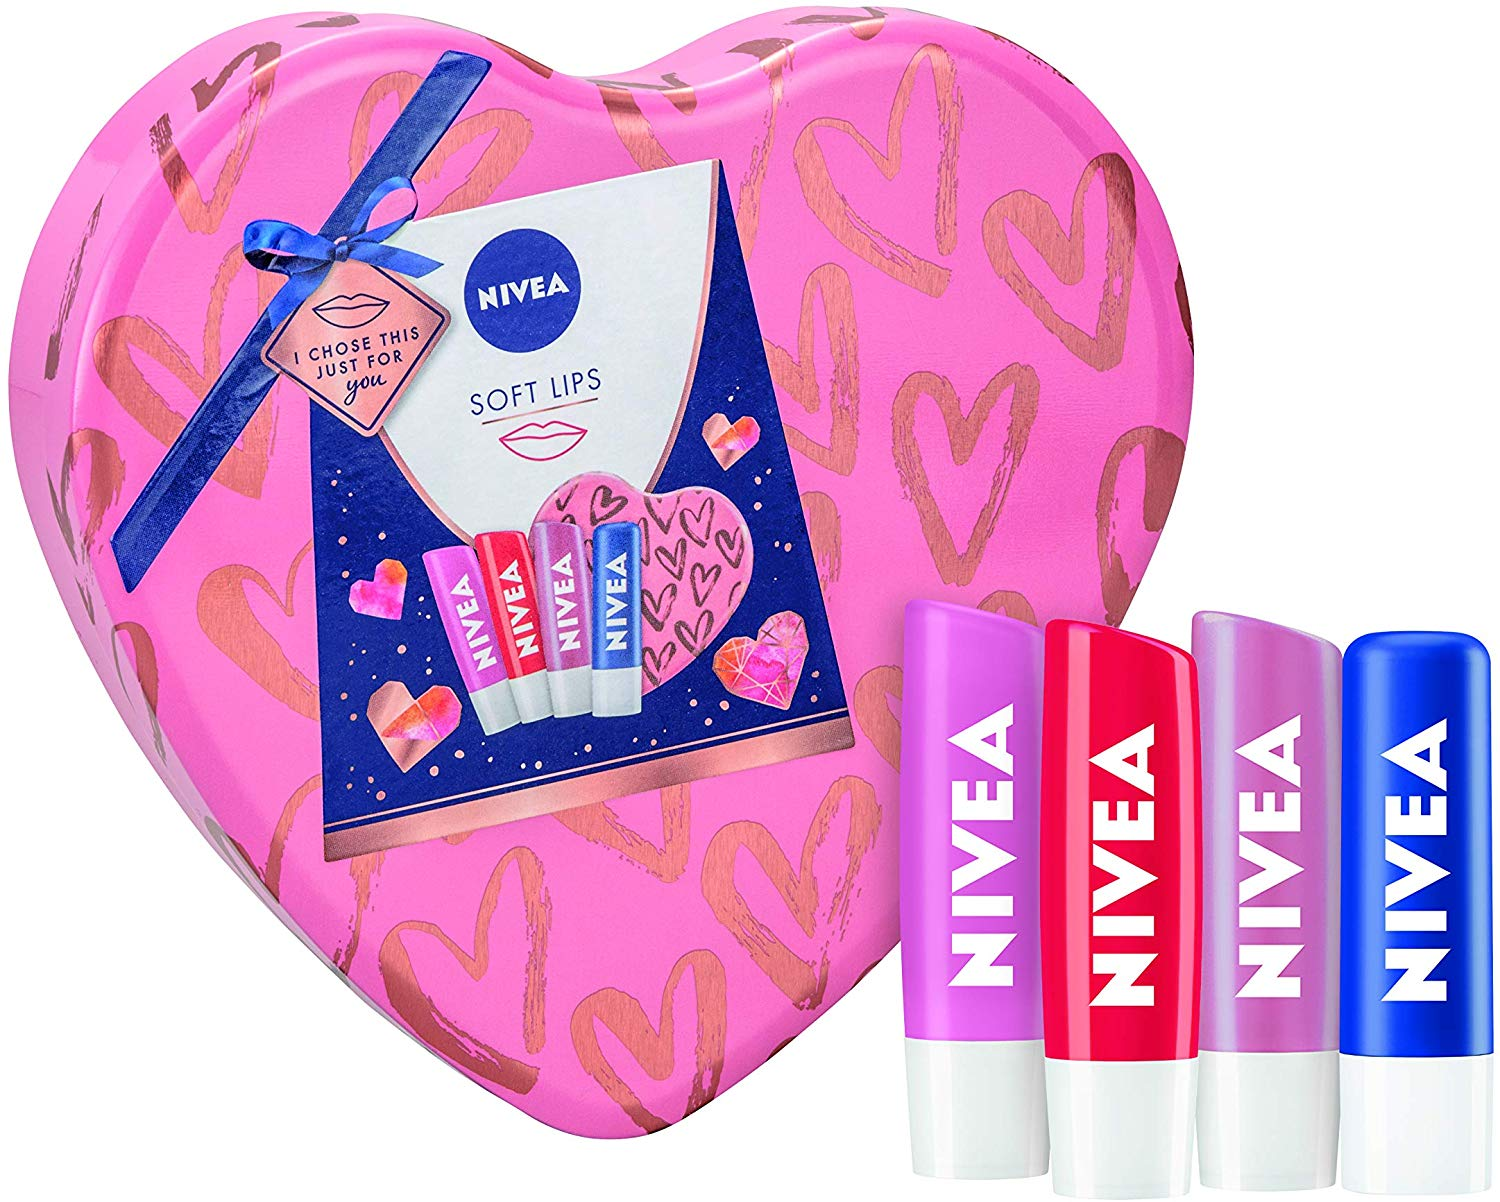 NIVEA Soft Lips Gift Set £4.33